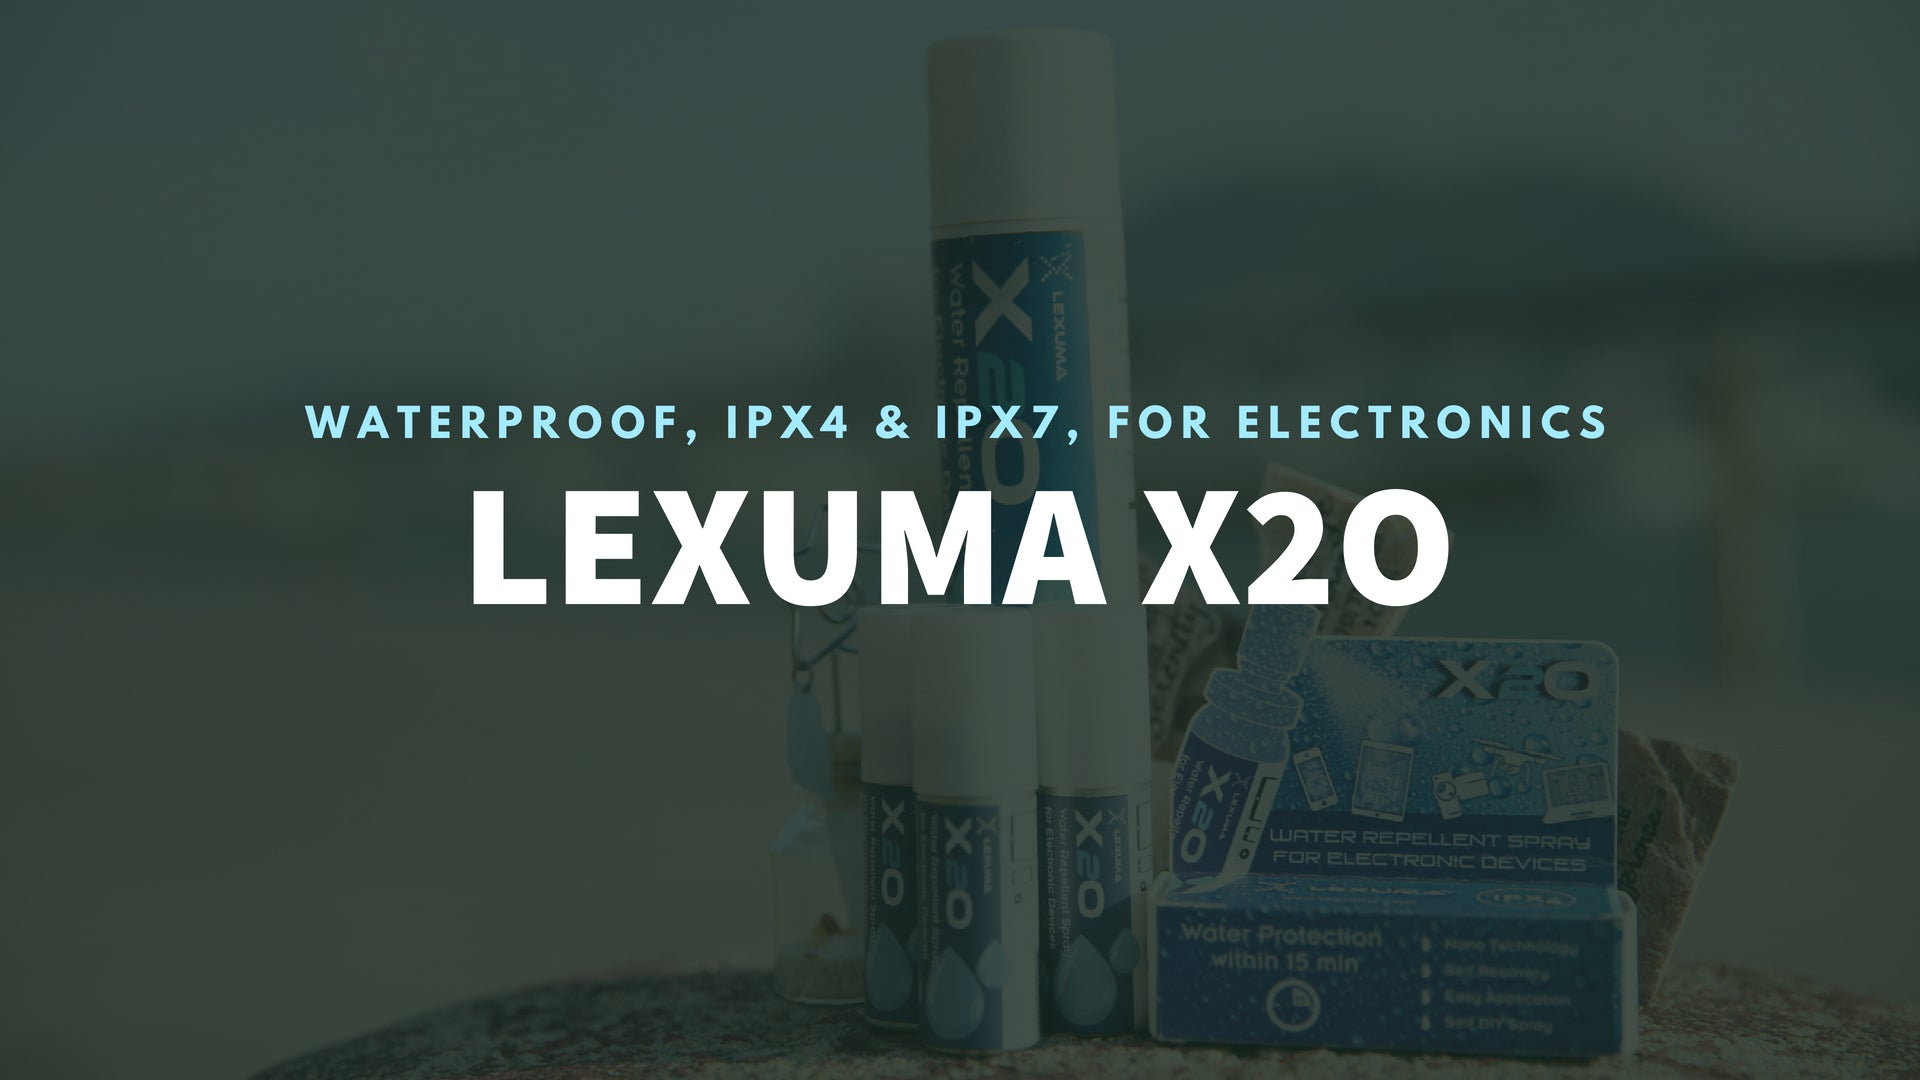 Lexuma 辣數碼防水噴霧 X2O Water Repellent coating Spray with IPX4 and IPX7 water protection